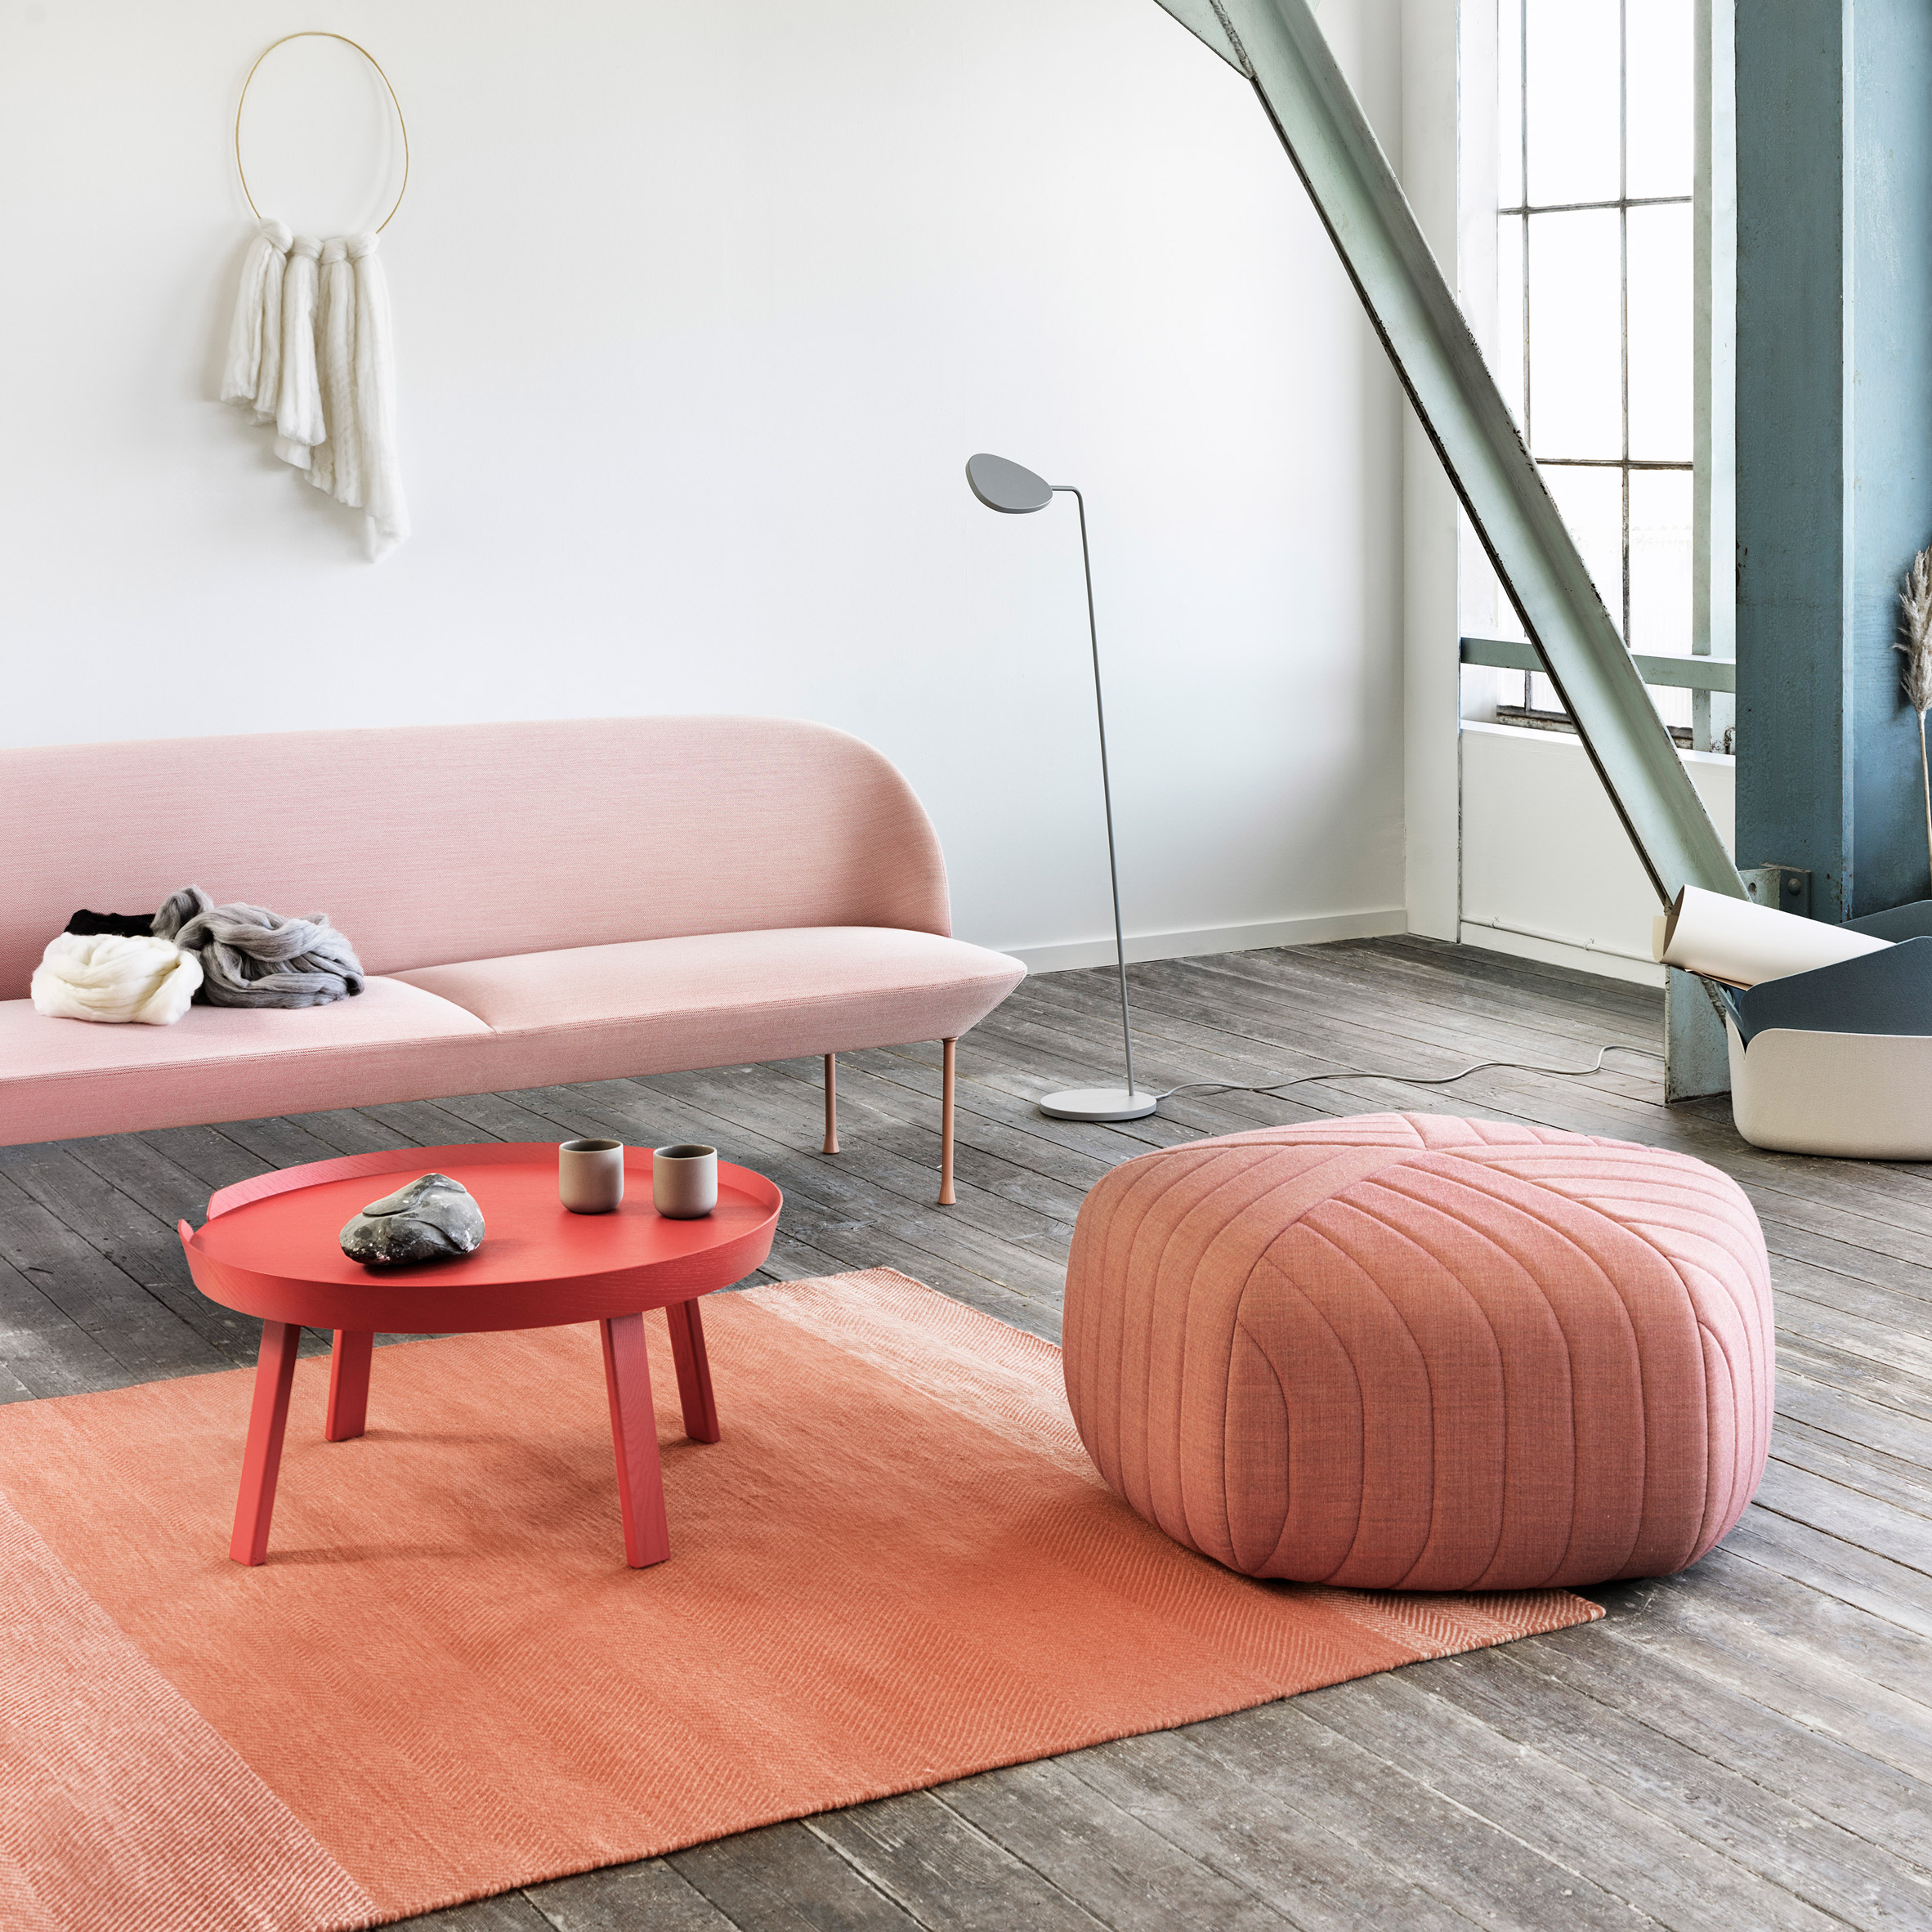 muuto-five-pouff-xl-dezeen-pink-furniture-pinterest-roundups-sq